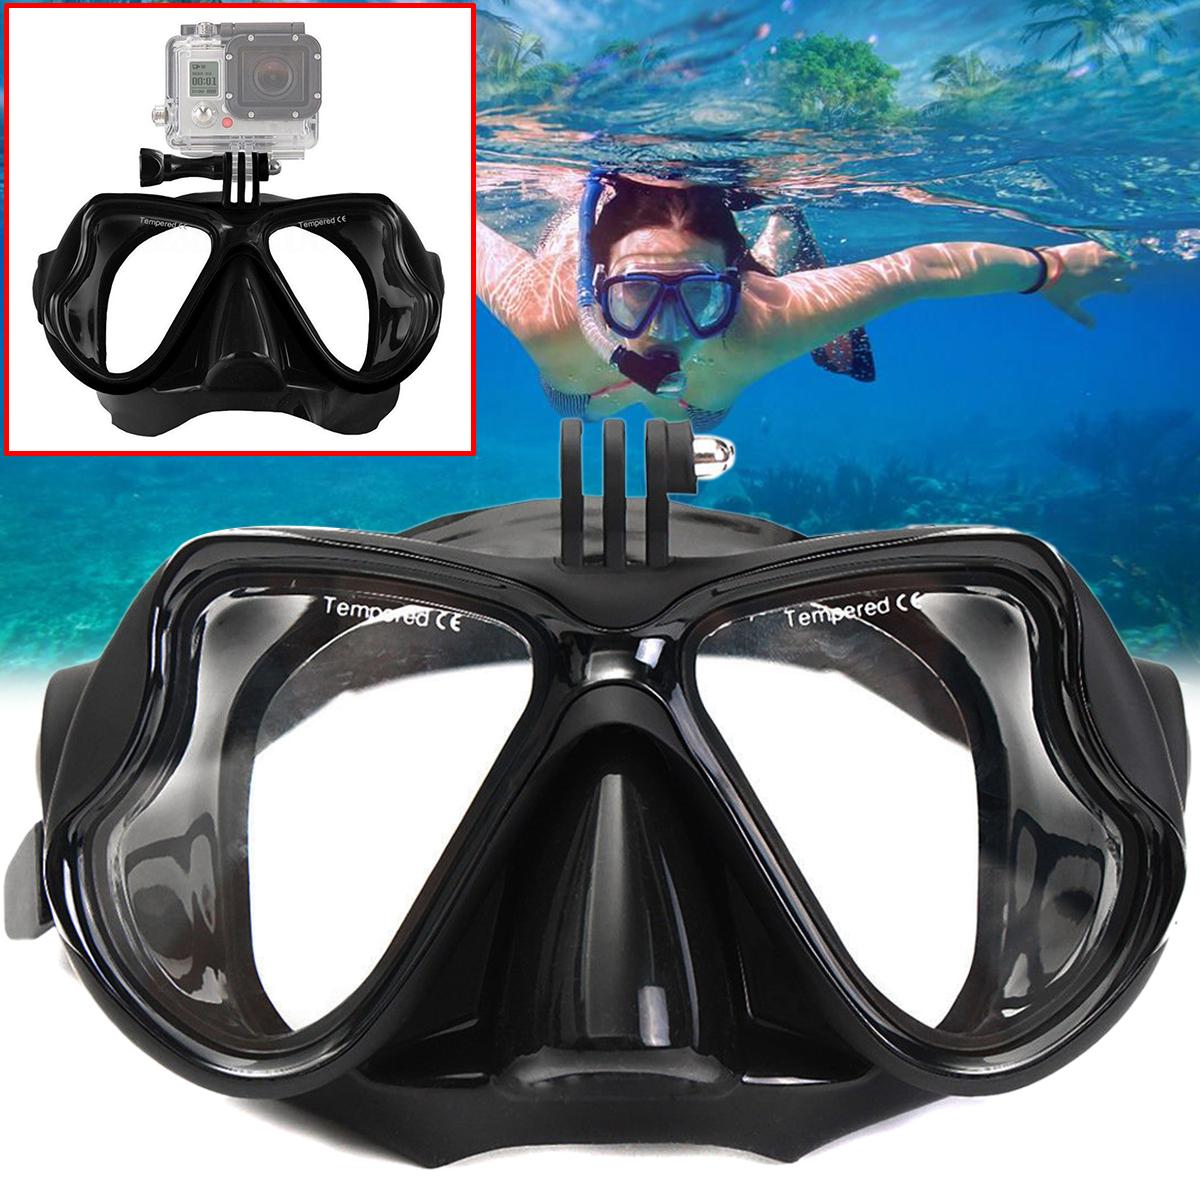 Mayitr Professional Underwater Diving Mask Scuba Snorkel Swimming Goggles Camera Mount Water Sports Equipment New 2017